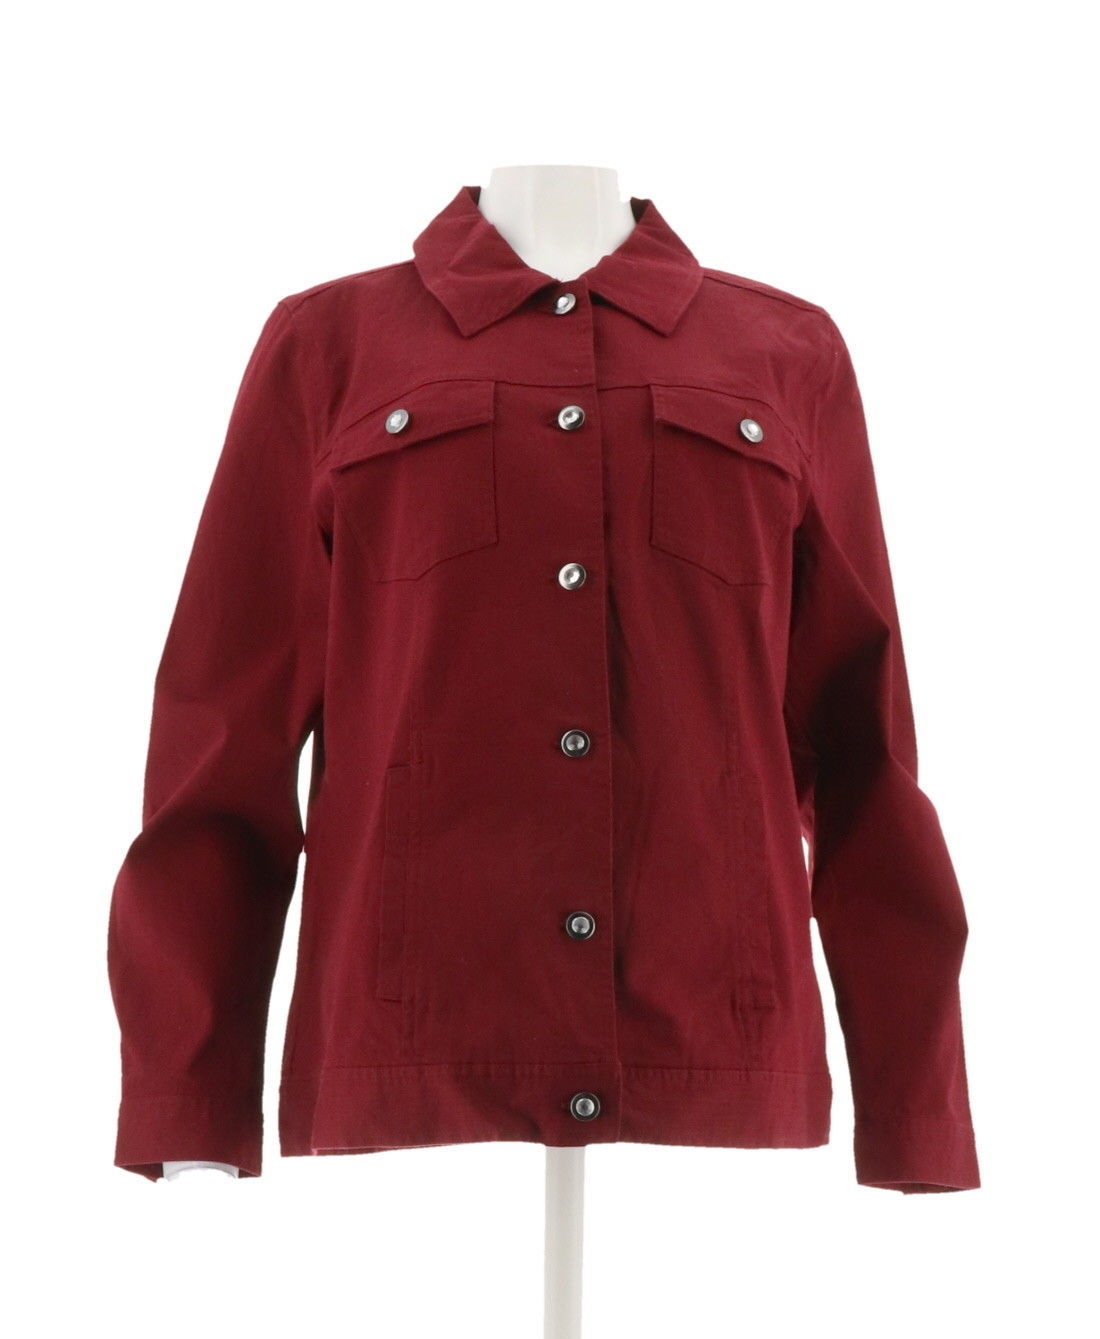 Denim Co Pretty Stretch Twill Jean Jacket Bling Buttons Fall Wine M NEW A199936